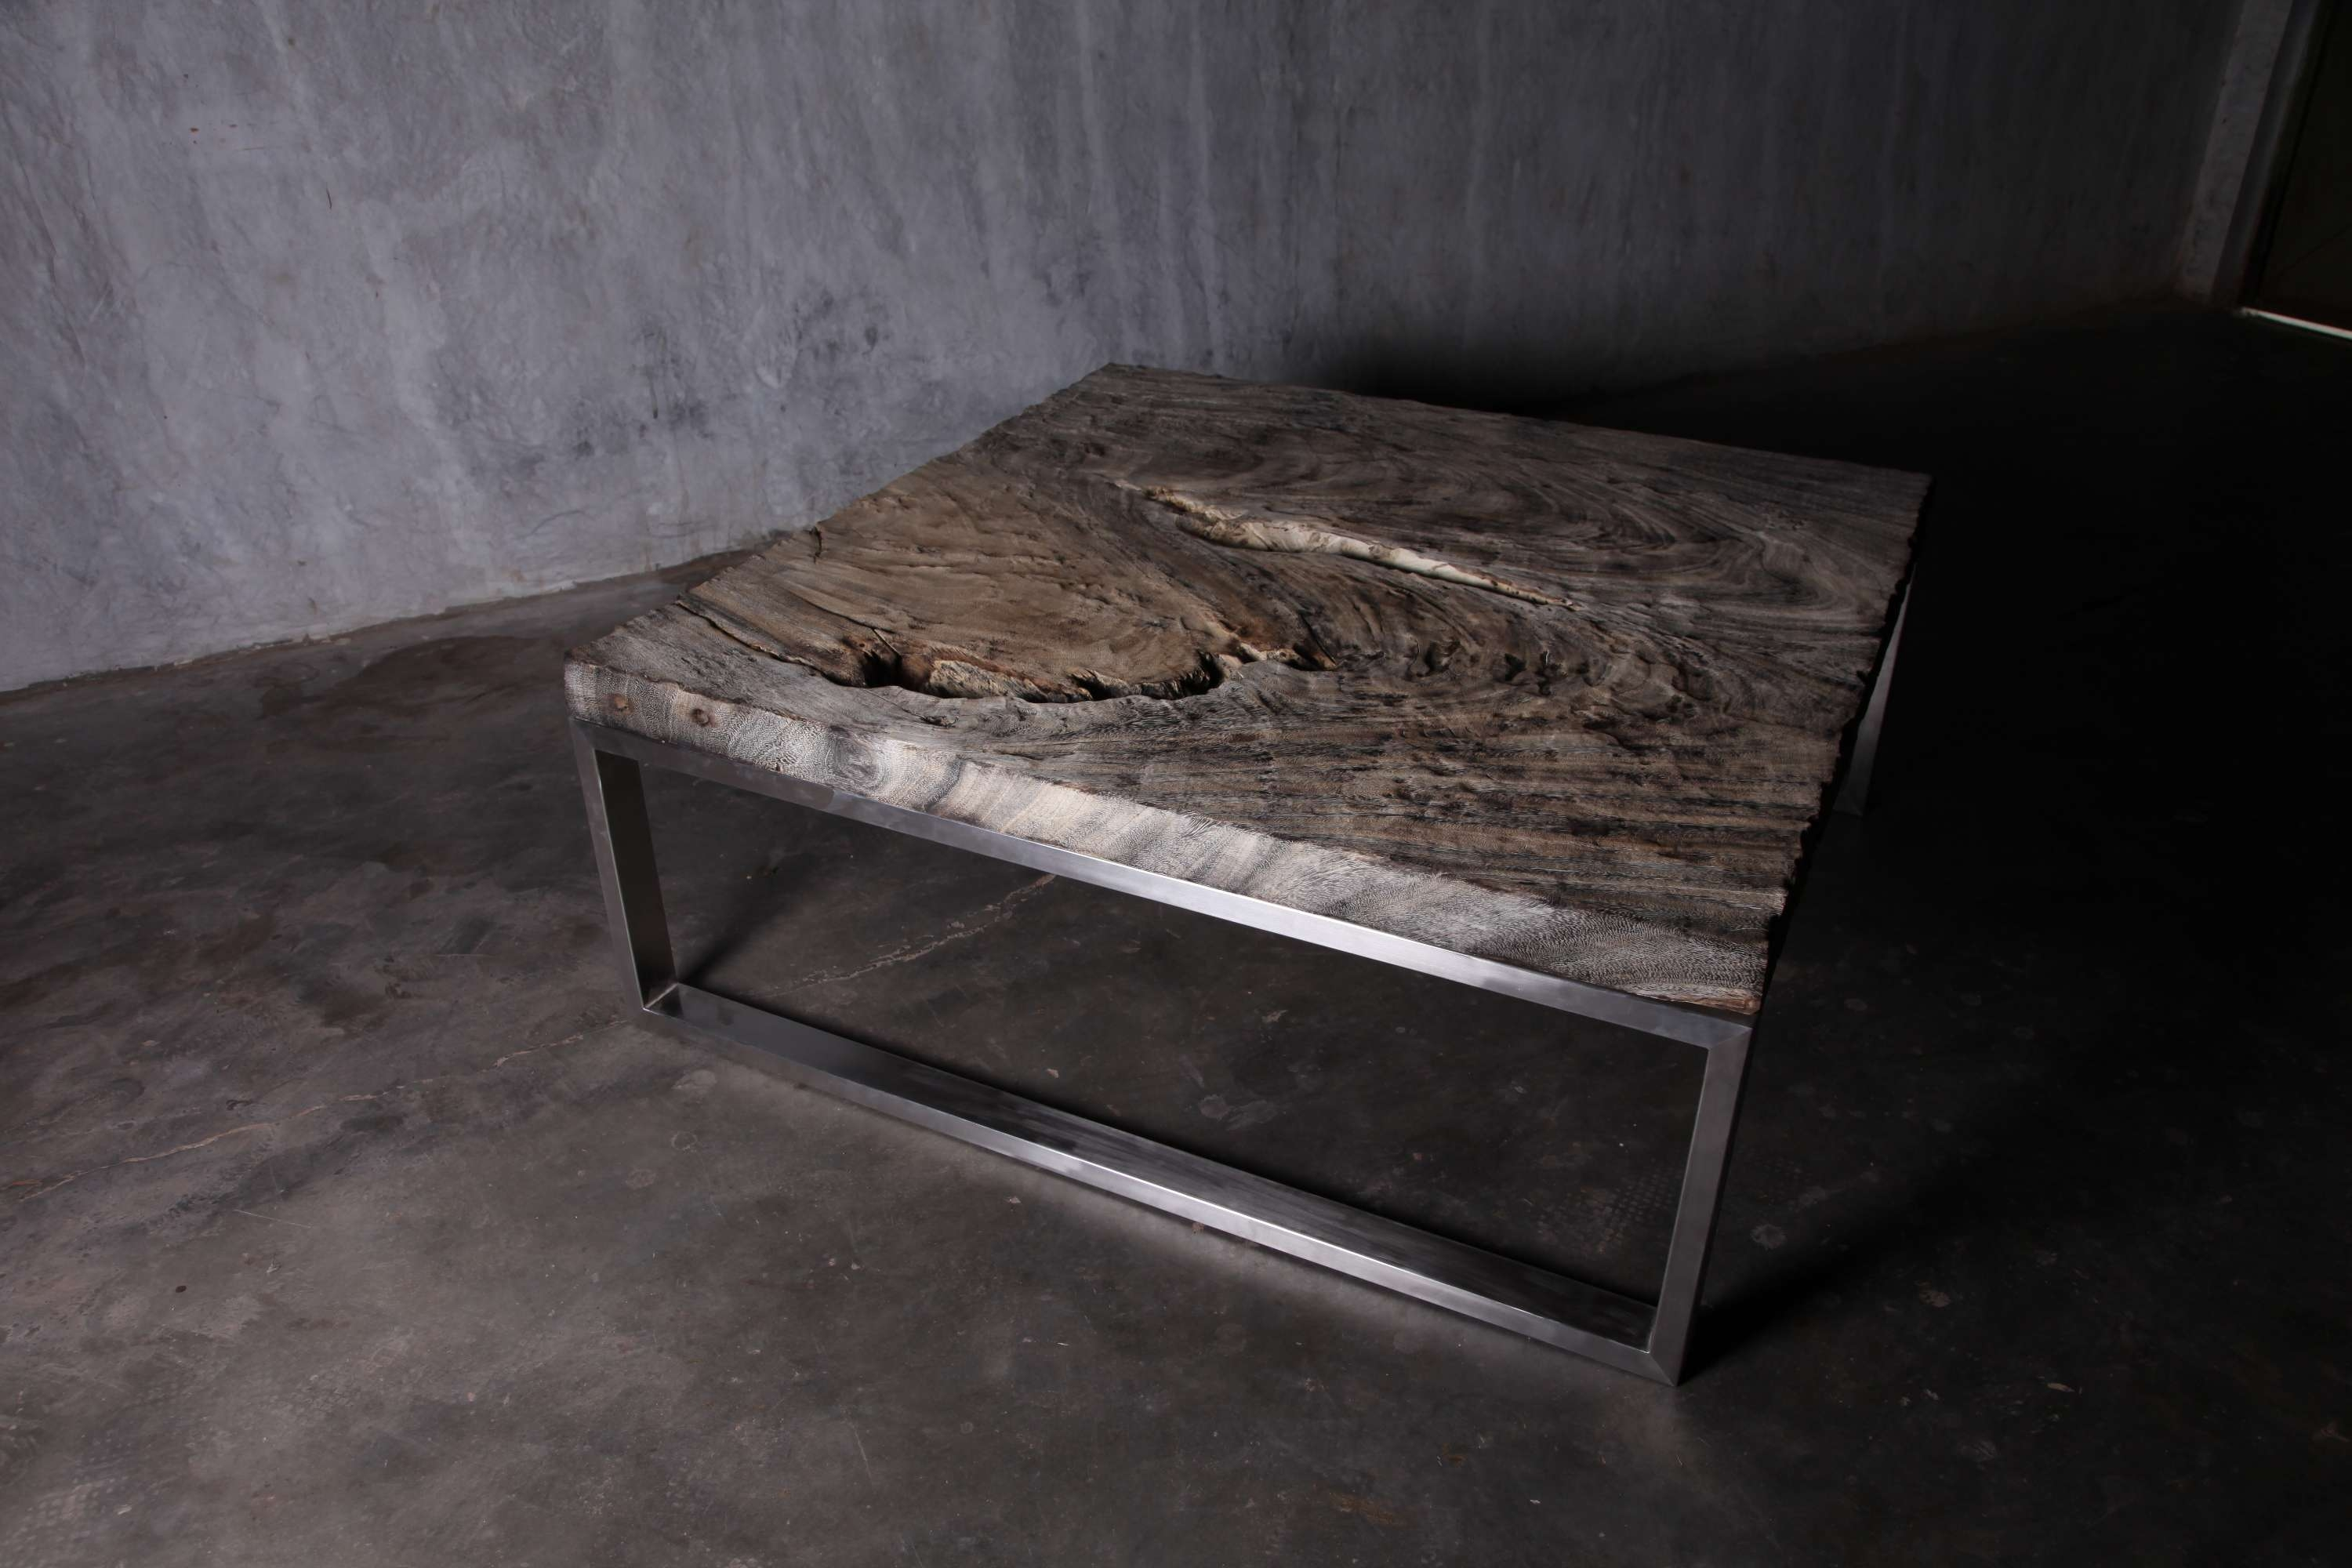 Rustic Square Coffee Table With Storage With Metal Materials Base Inside Popular Square Stone Coffee Tables (View 19 of 20)